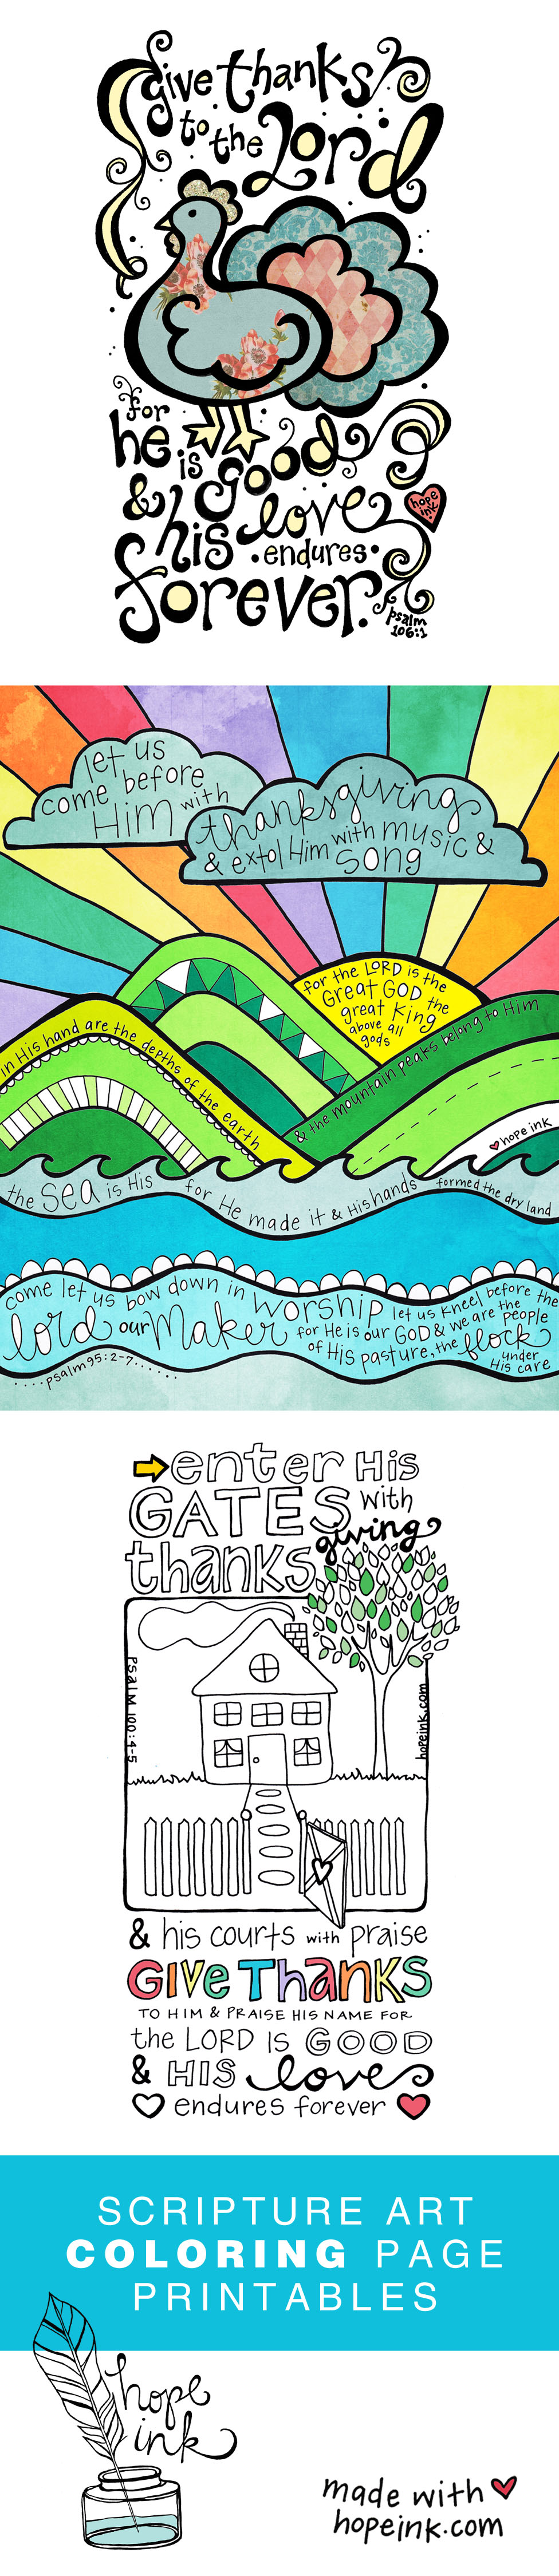 Thanksgiving Coloring Printables Scripture Art